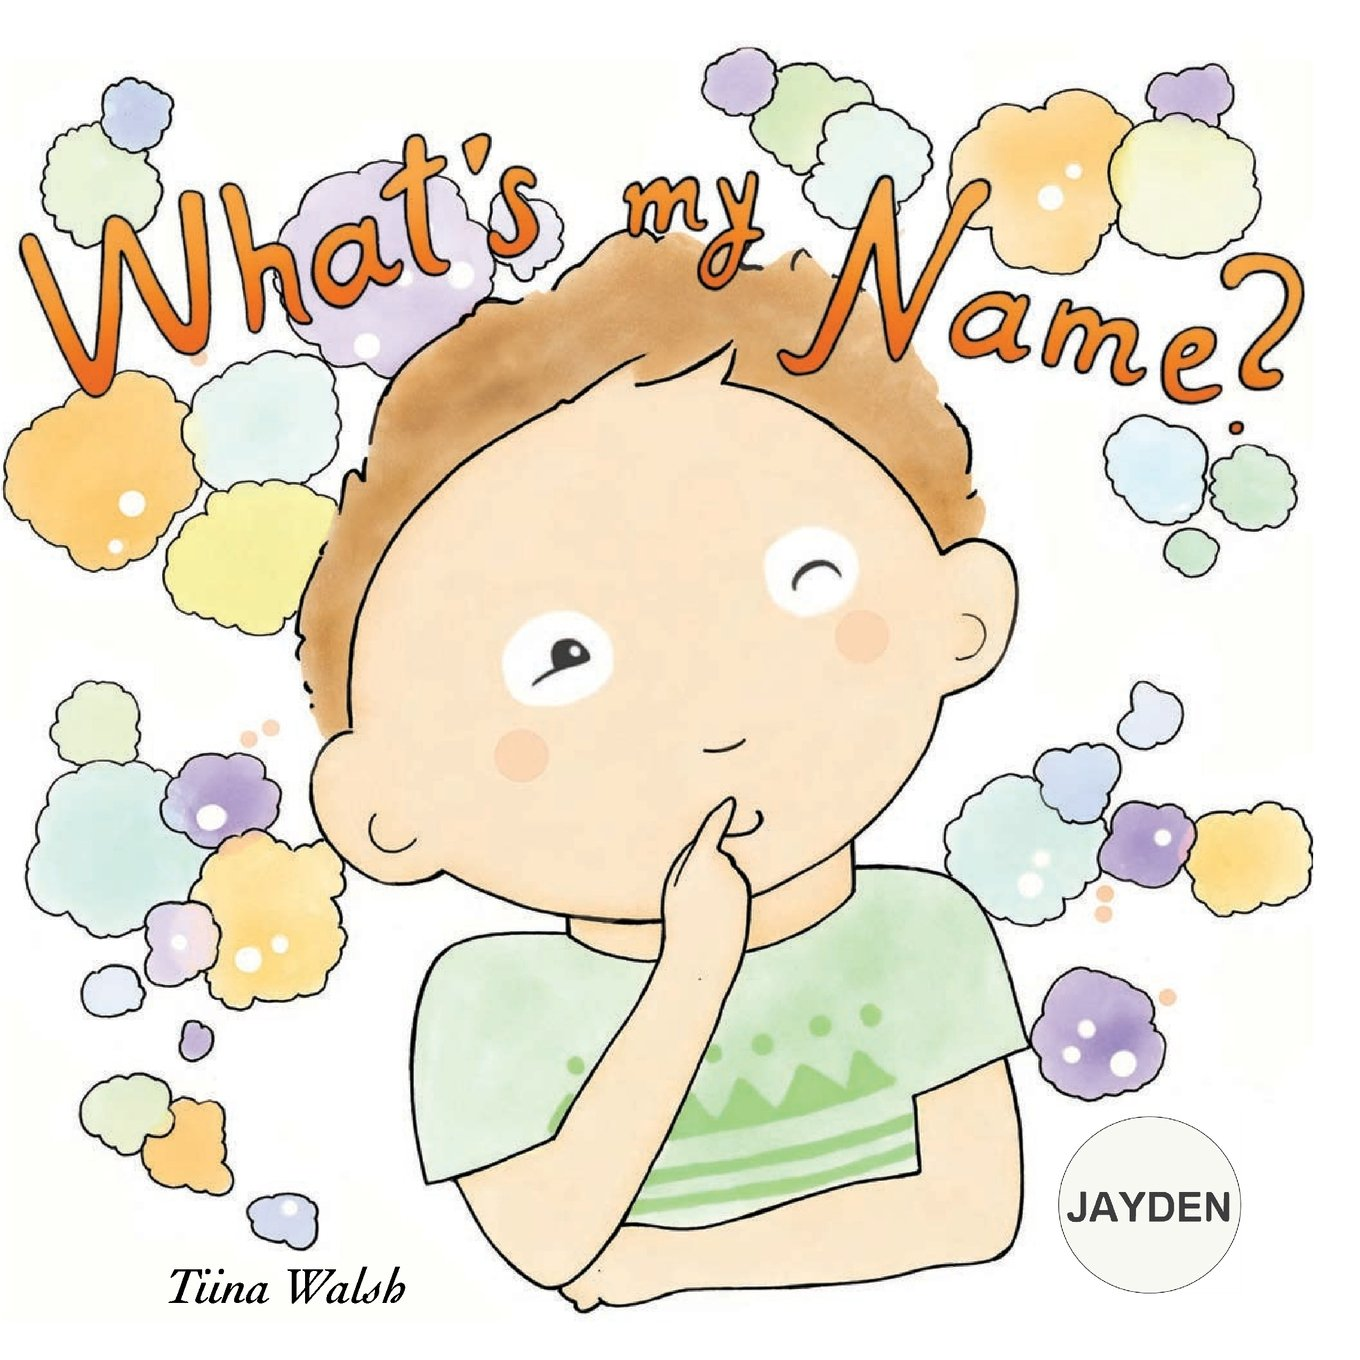 Read Online What's my name? JAYDEN pdf